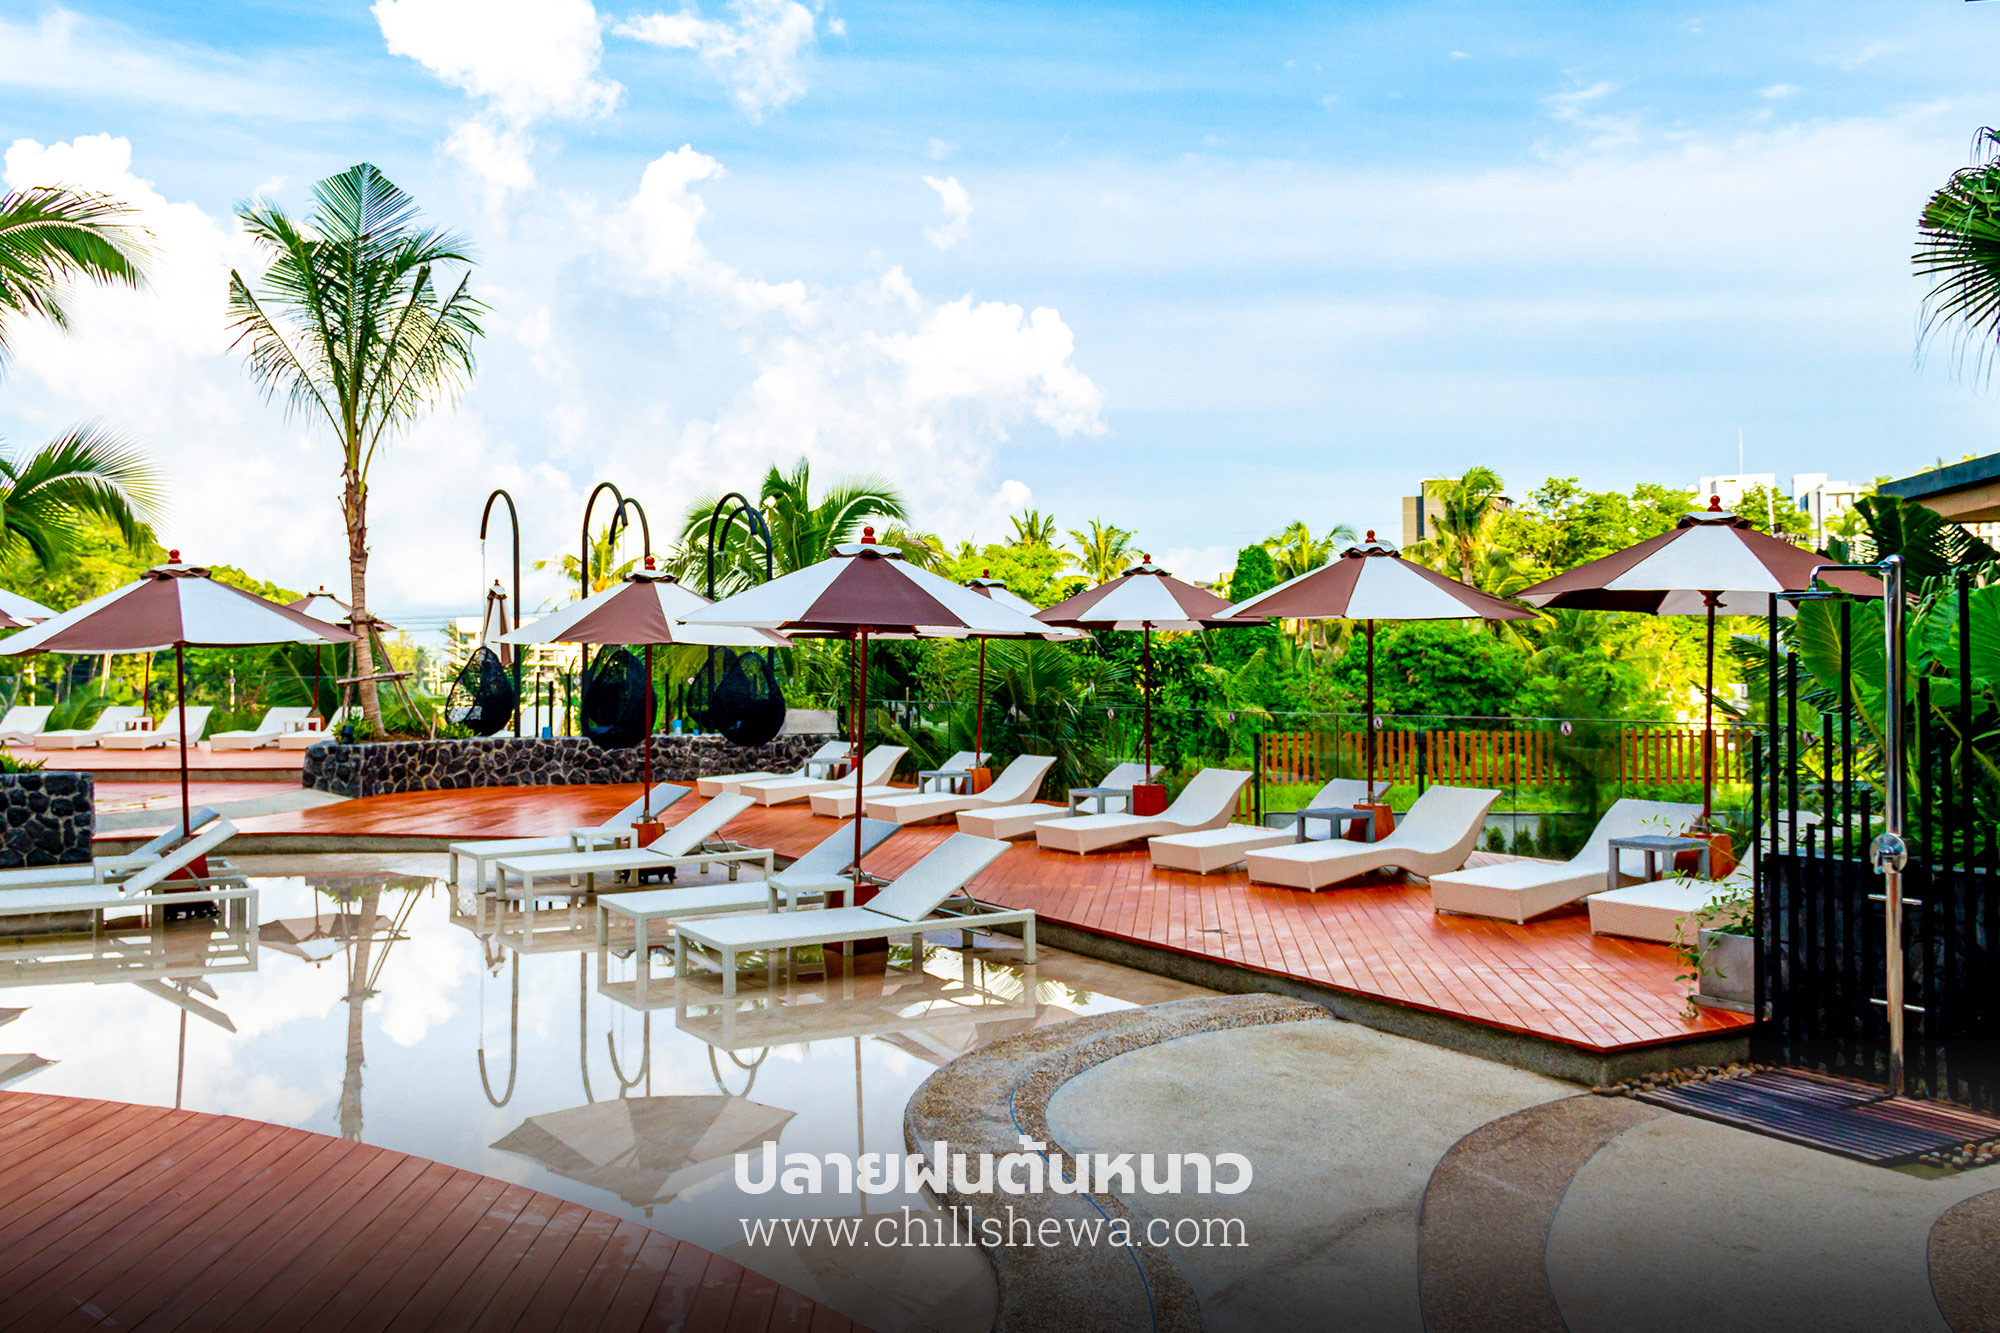 Swimming Pool Sea Seeker Krabi Resort Aonang sea seeker krabi resort SEA SEEKER KRABI RESORT โรงแรมสไตล์โมเดิร์น ในอ่าวนาง กระบี่ Sea Seeker Krabi 37